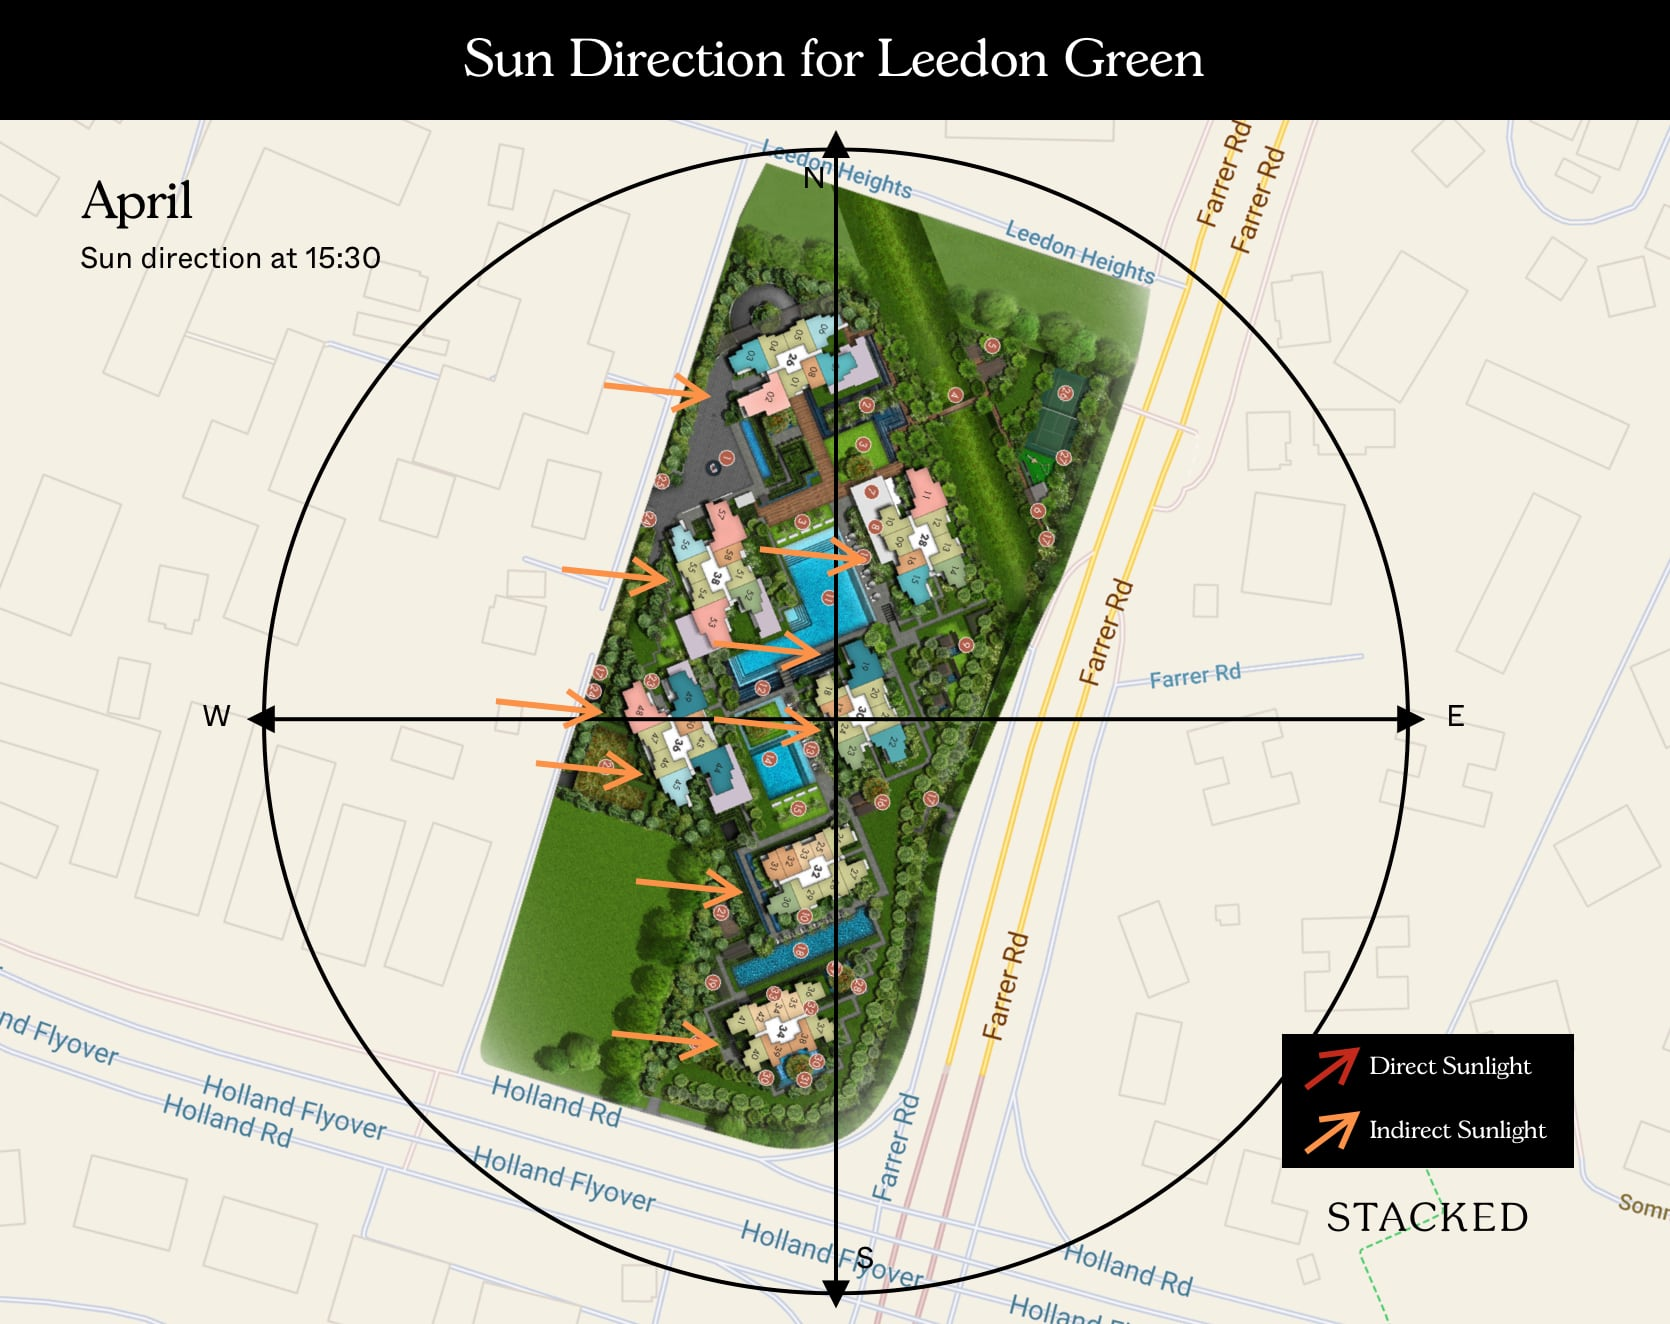 Leedon Green Sun Direction April